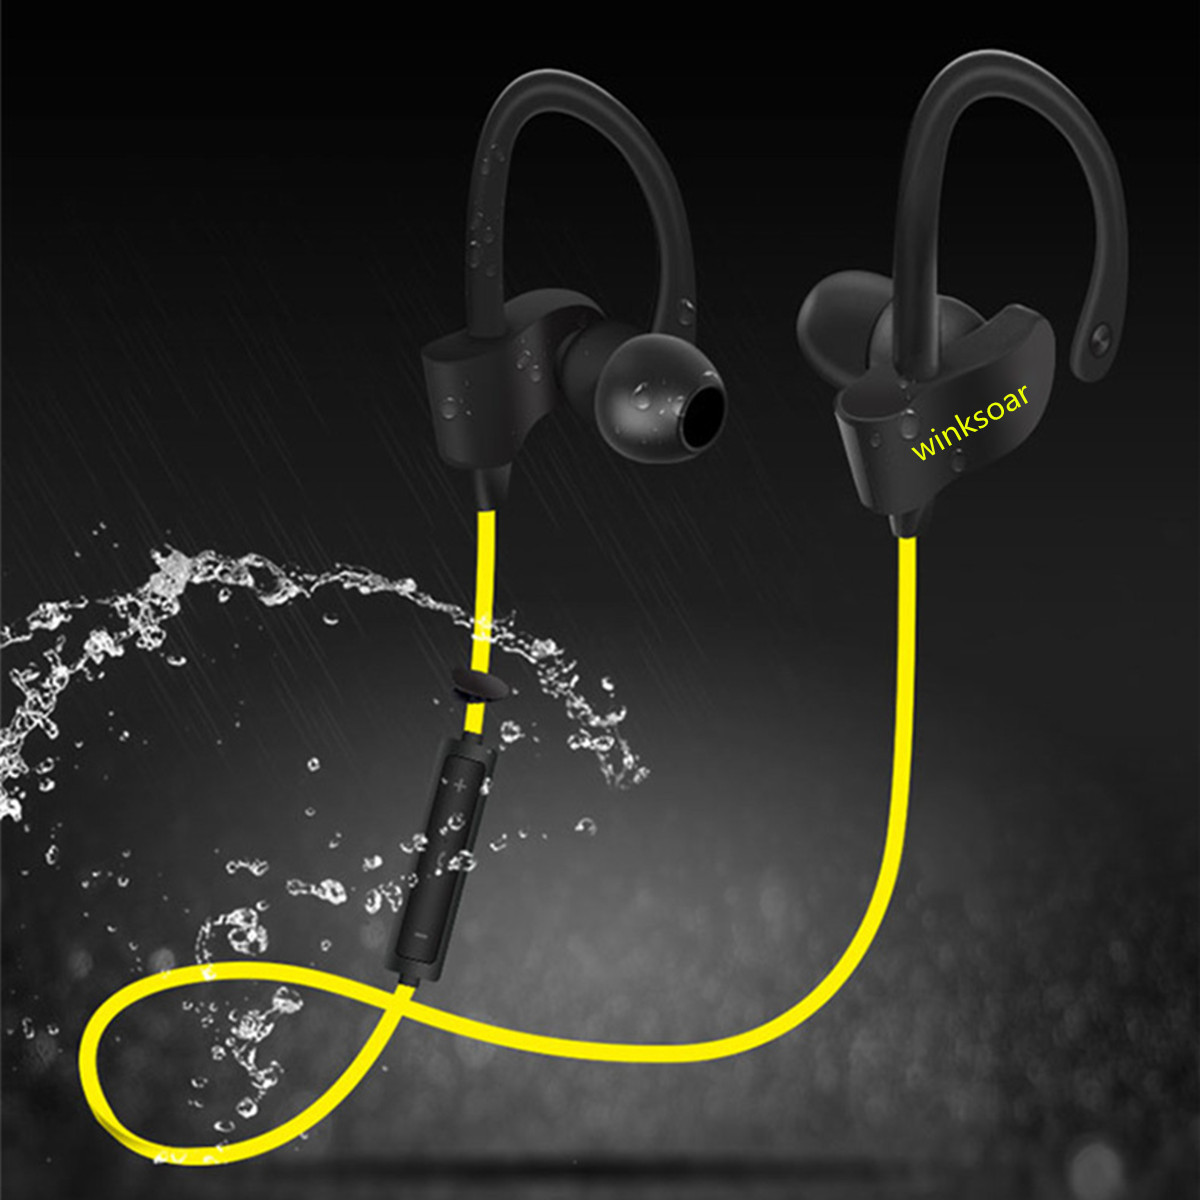 Winksoar Bluetooth Headset Waterproof Sports Stereo Headphone for Iphone Samsung Xiaomi LG